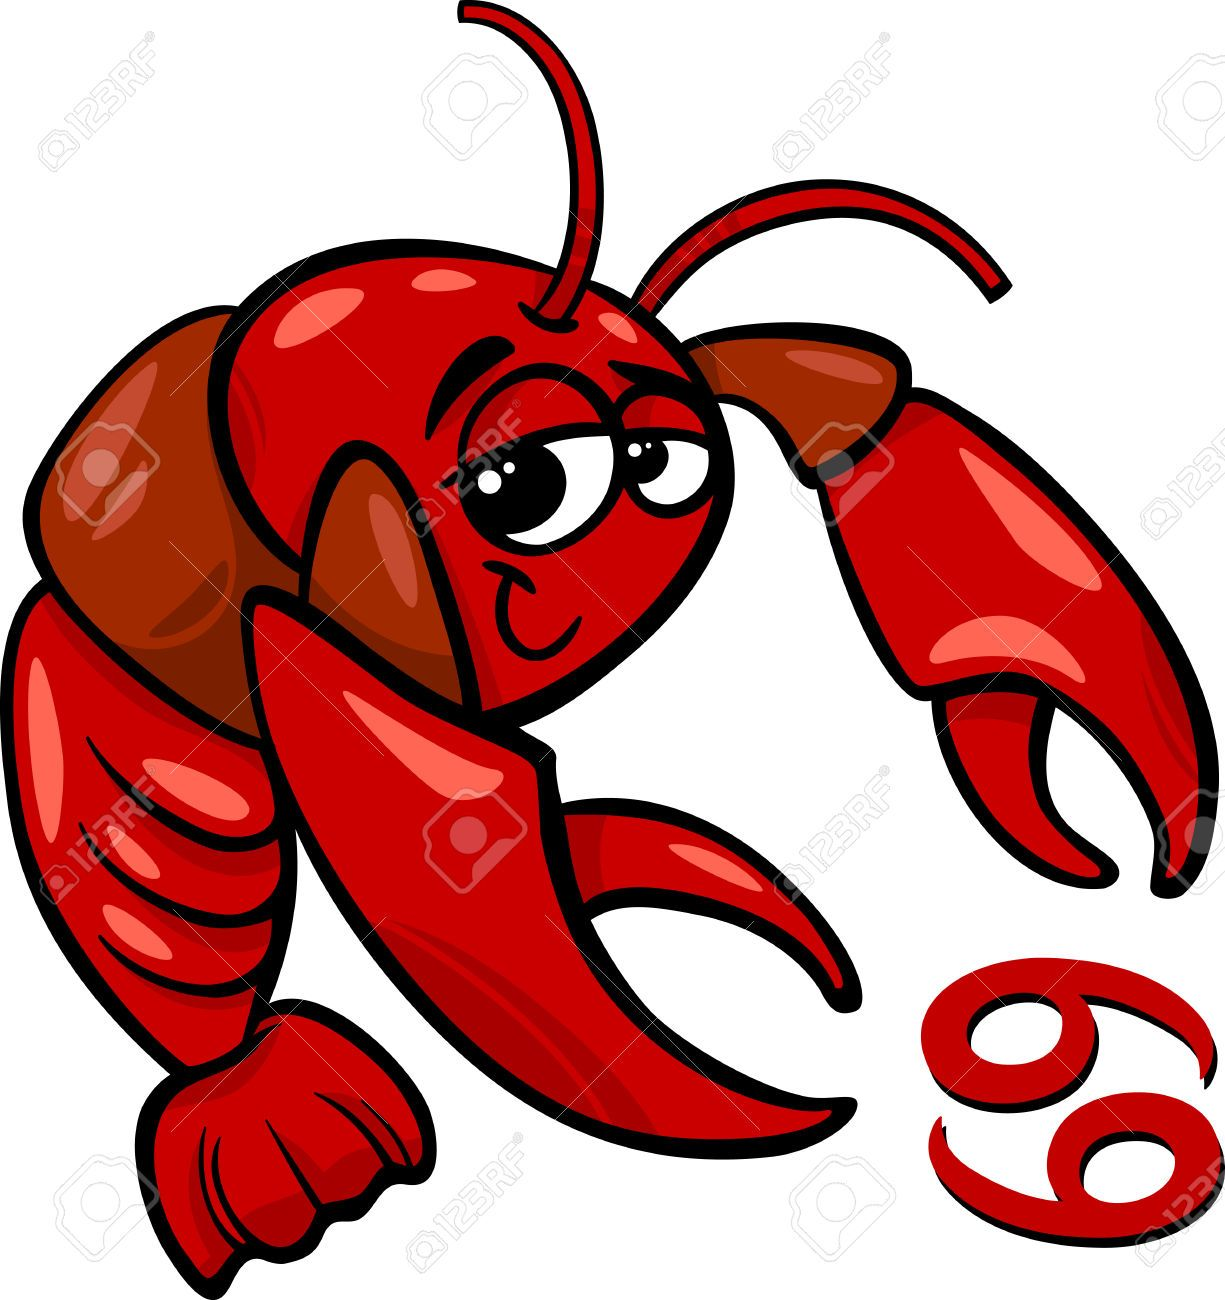 Stock illustrations cliparts and. Crawfish clipart baby